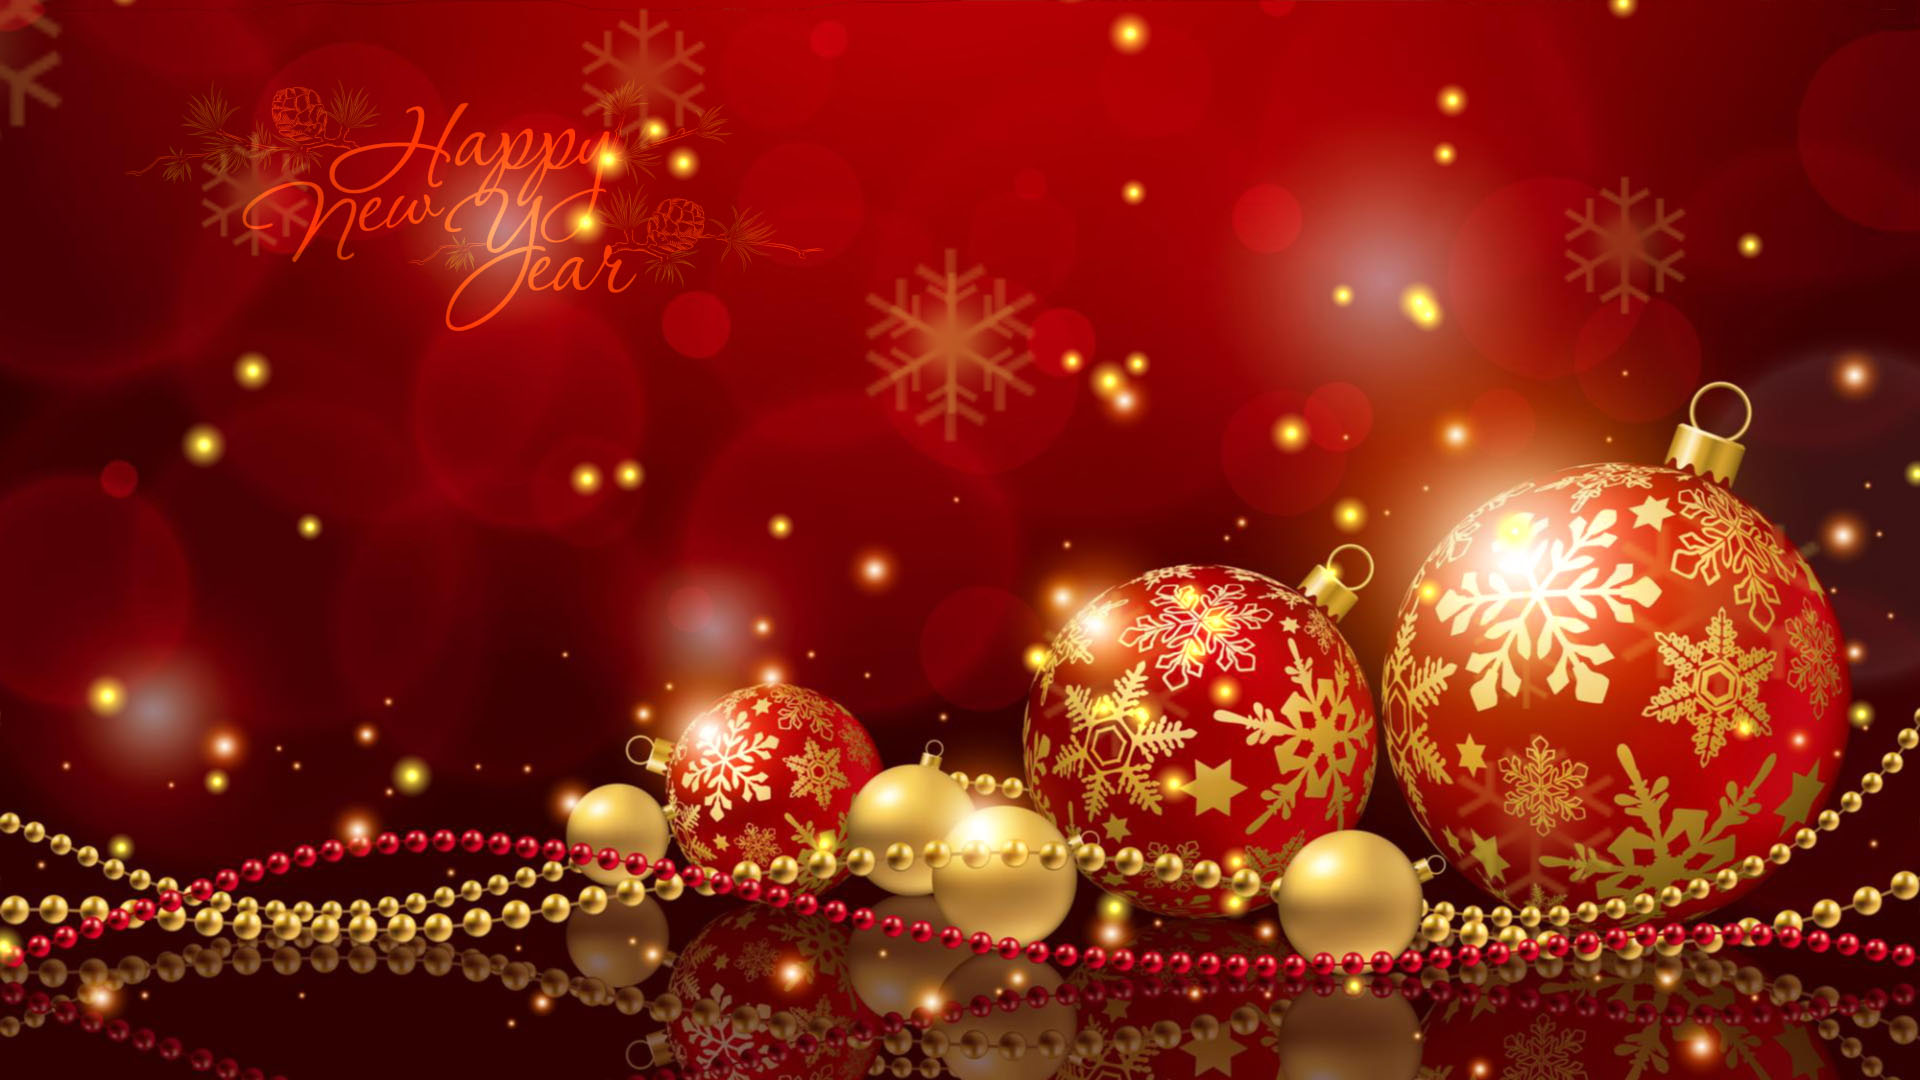 Free 3d Snow Falling Wallpaper New Year Happiness Download New Year Screensaver